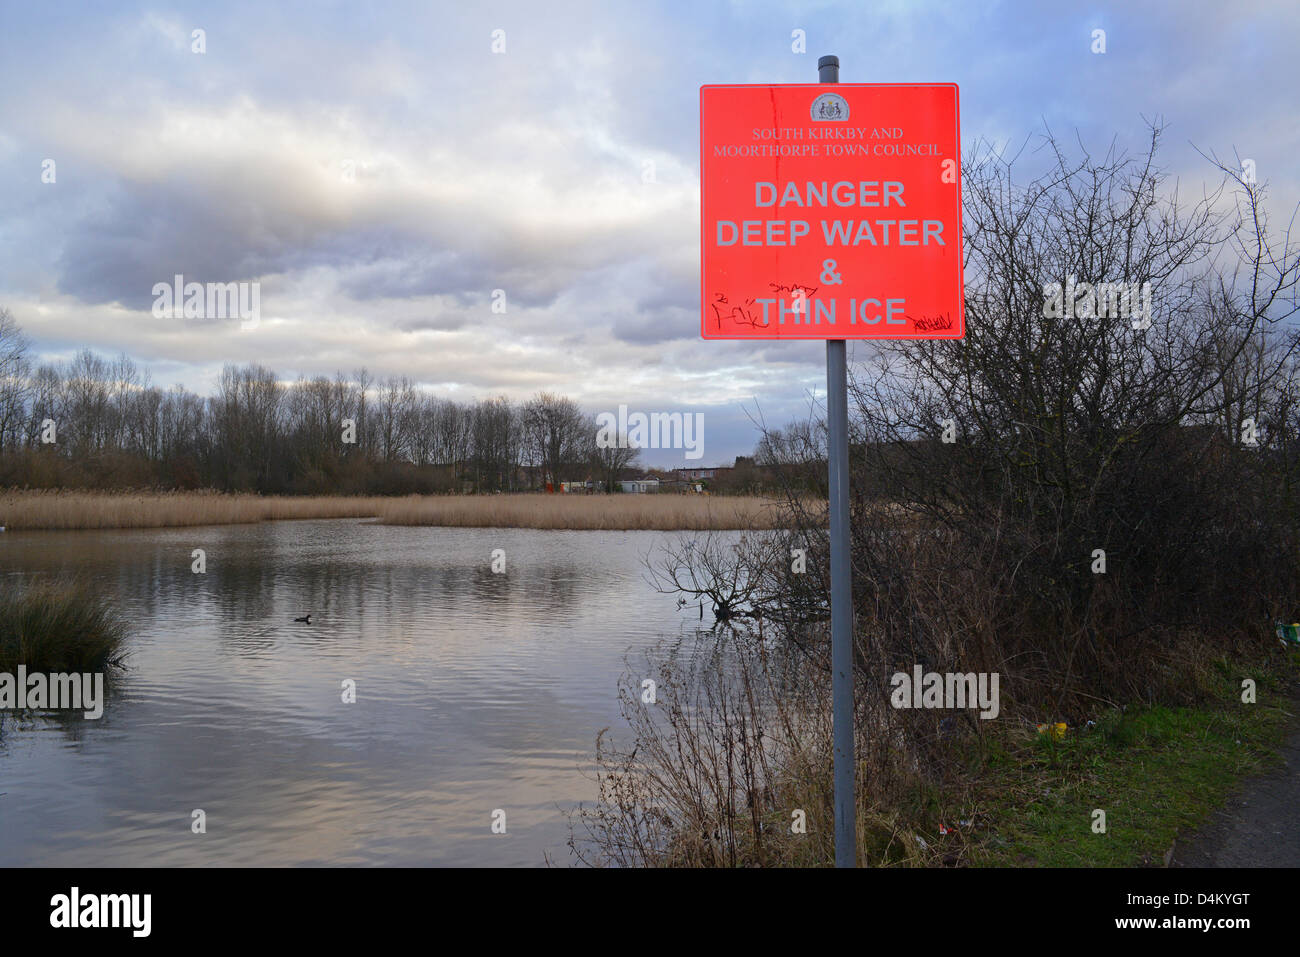 warning sign of deep water and thin ice by pond Yorkshire United Kingdom - Stock Image